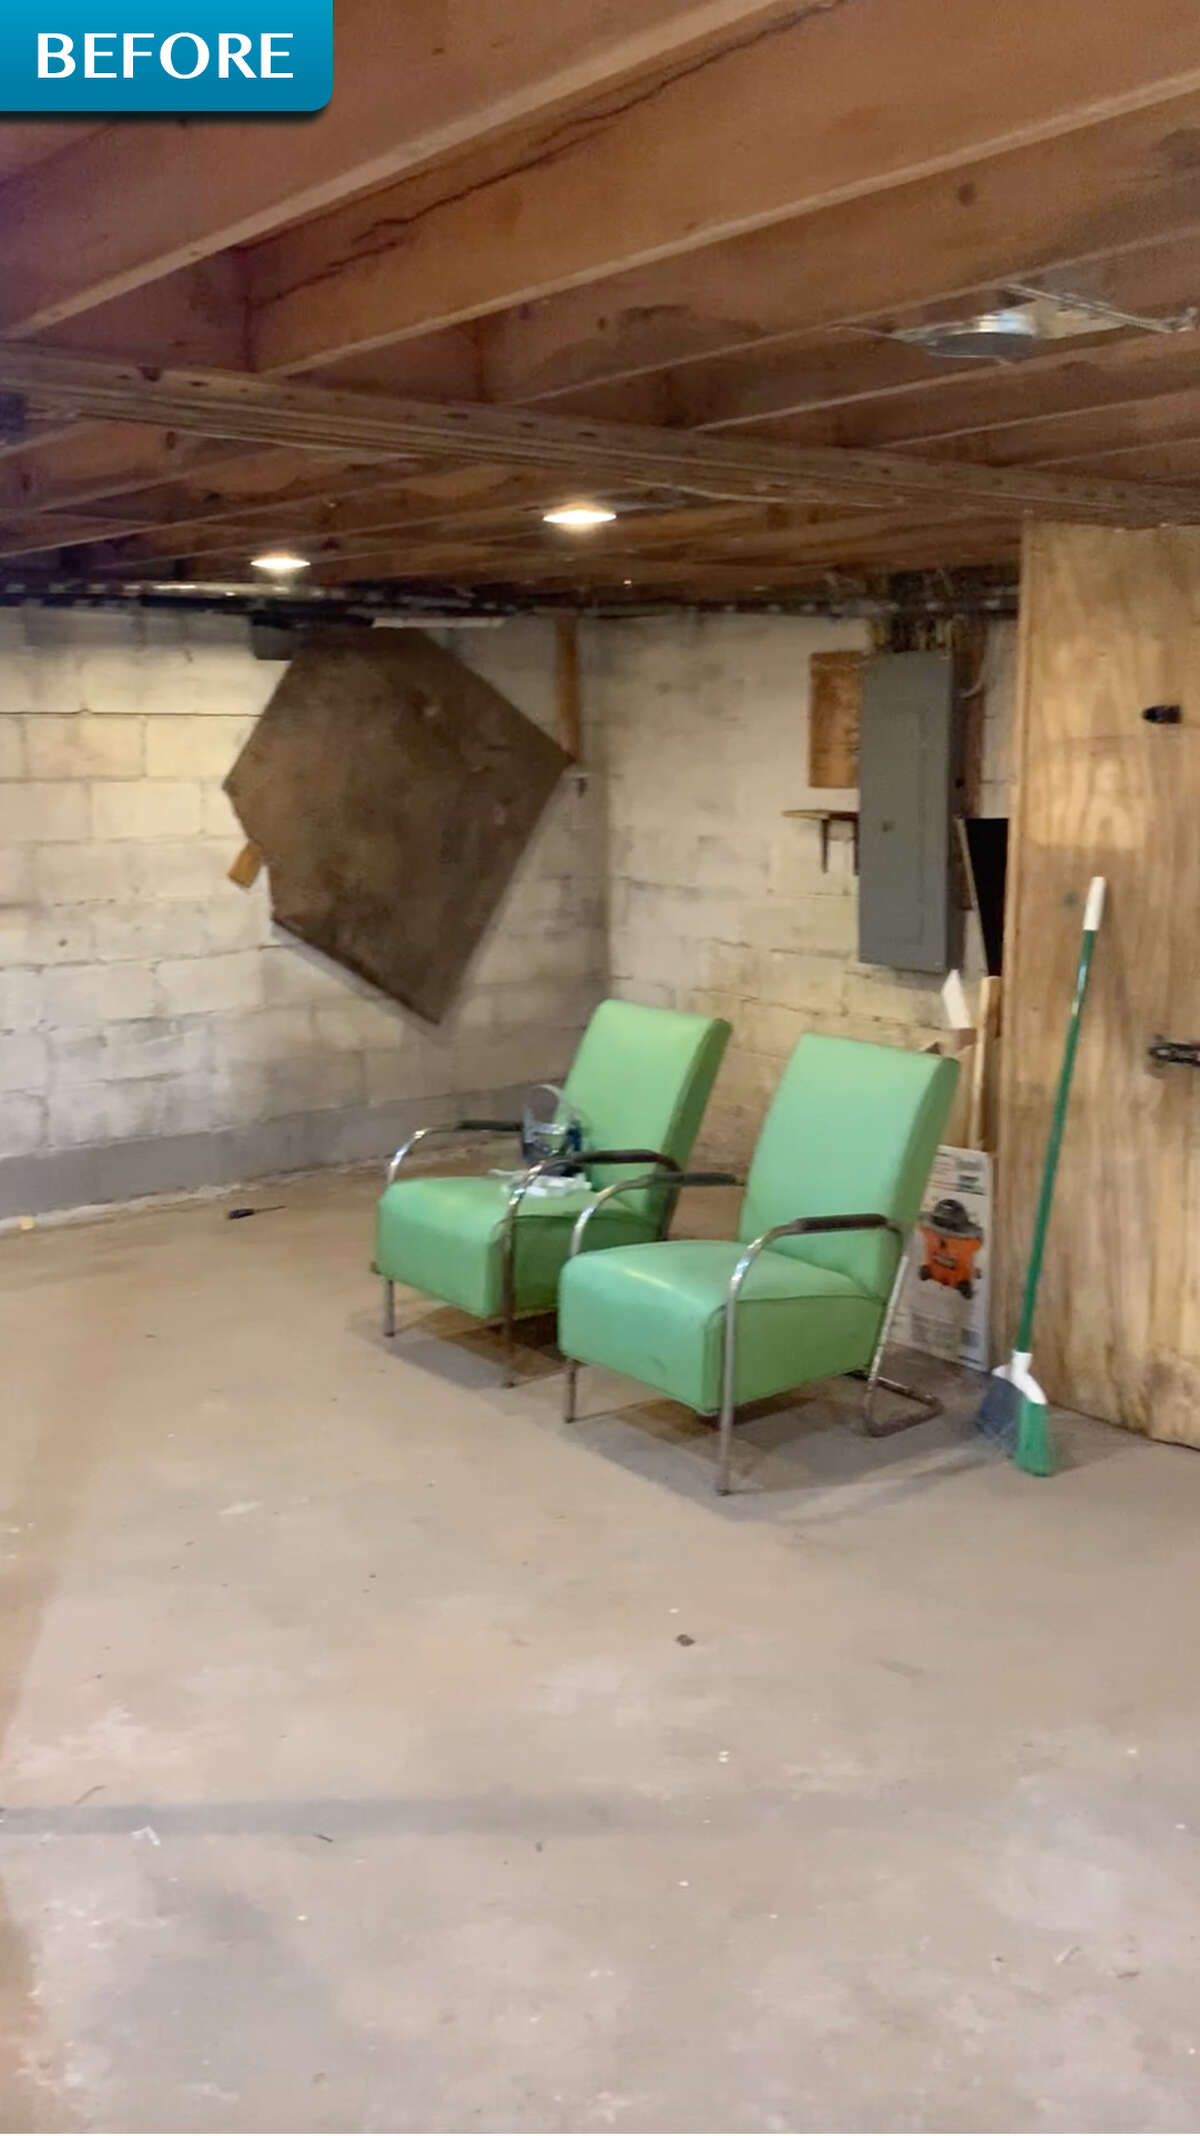 """BEFORE: Robert Fuller said of his cabin's original basement: """"The basement was very eerie, dark, damp and dismal and filled with mold."""""""